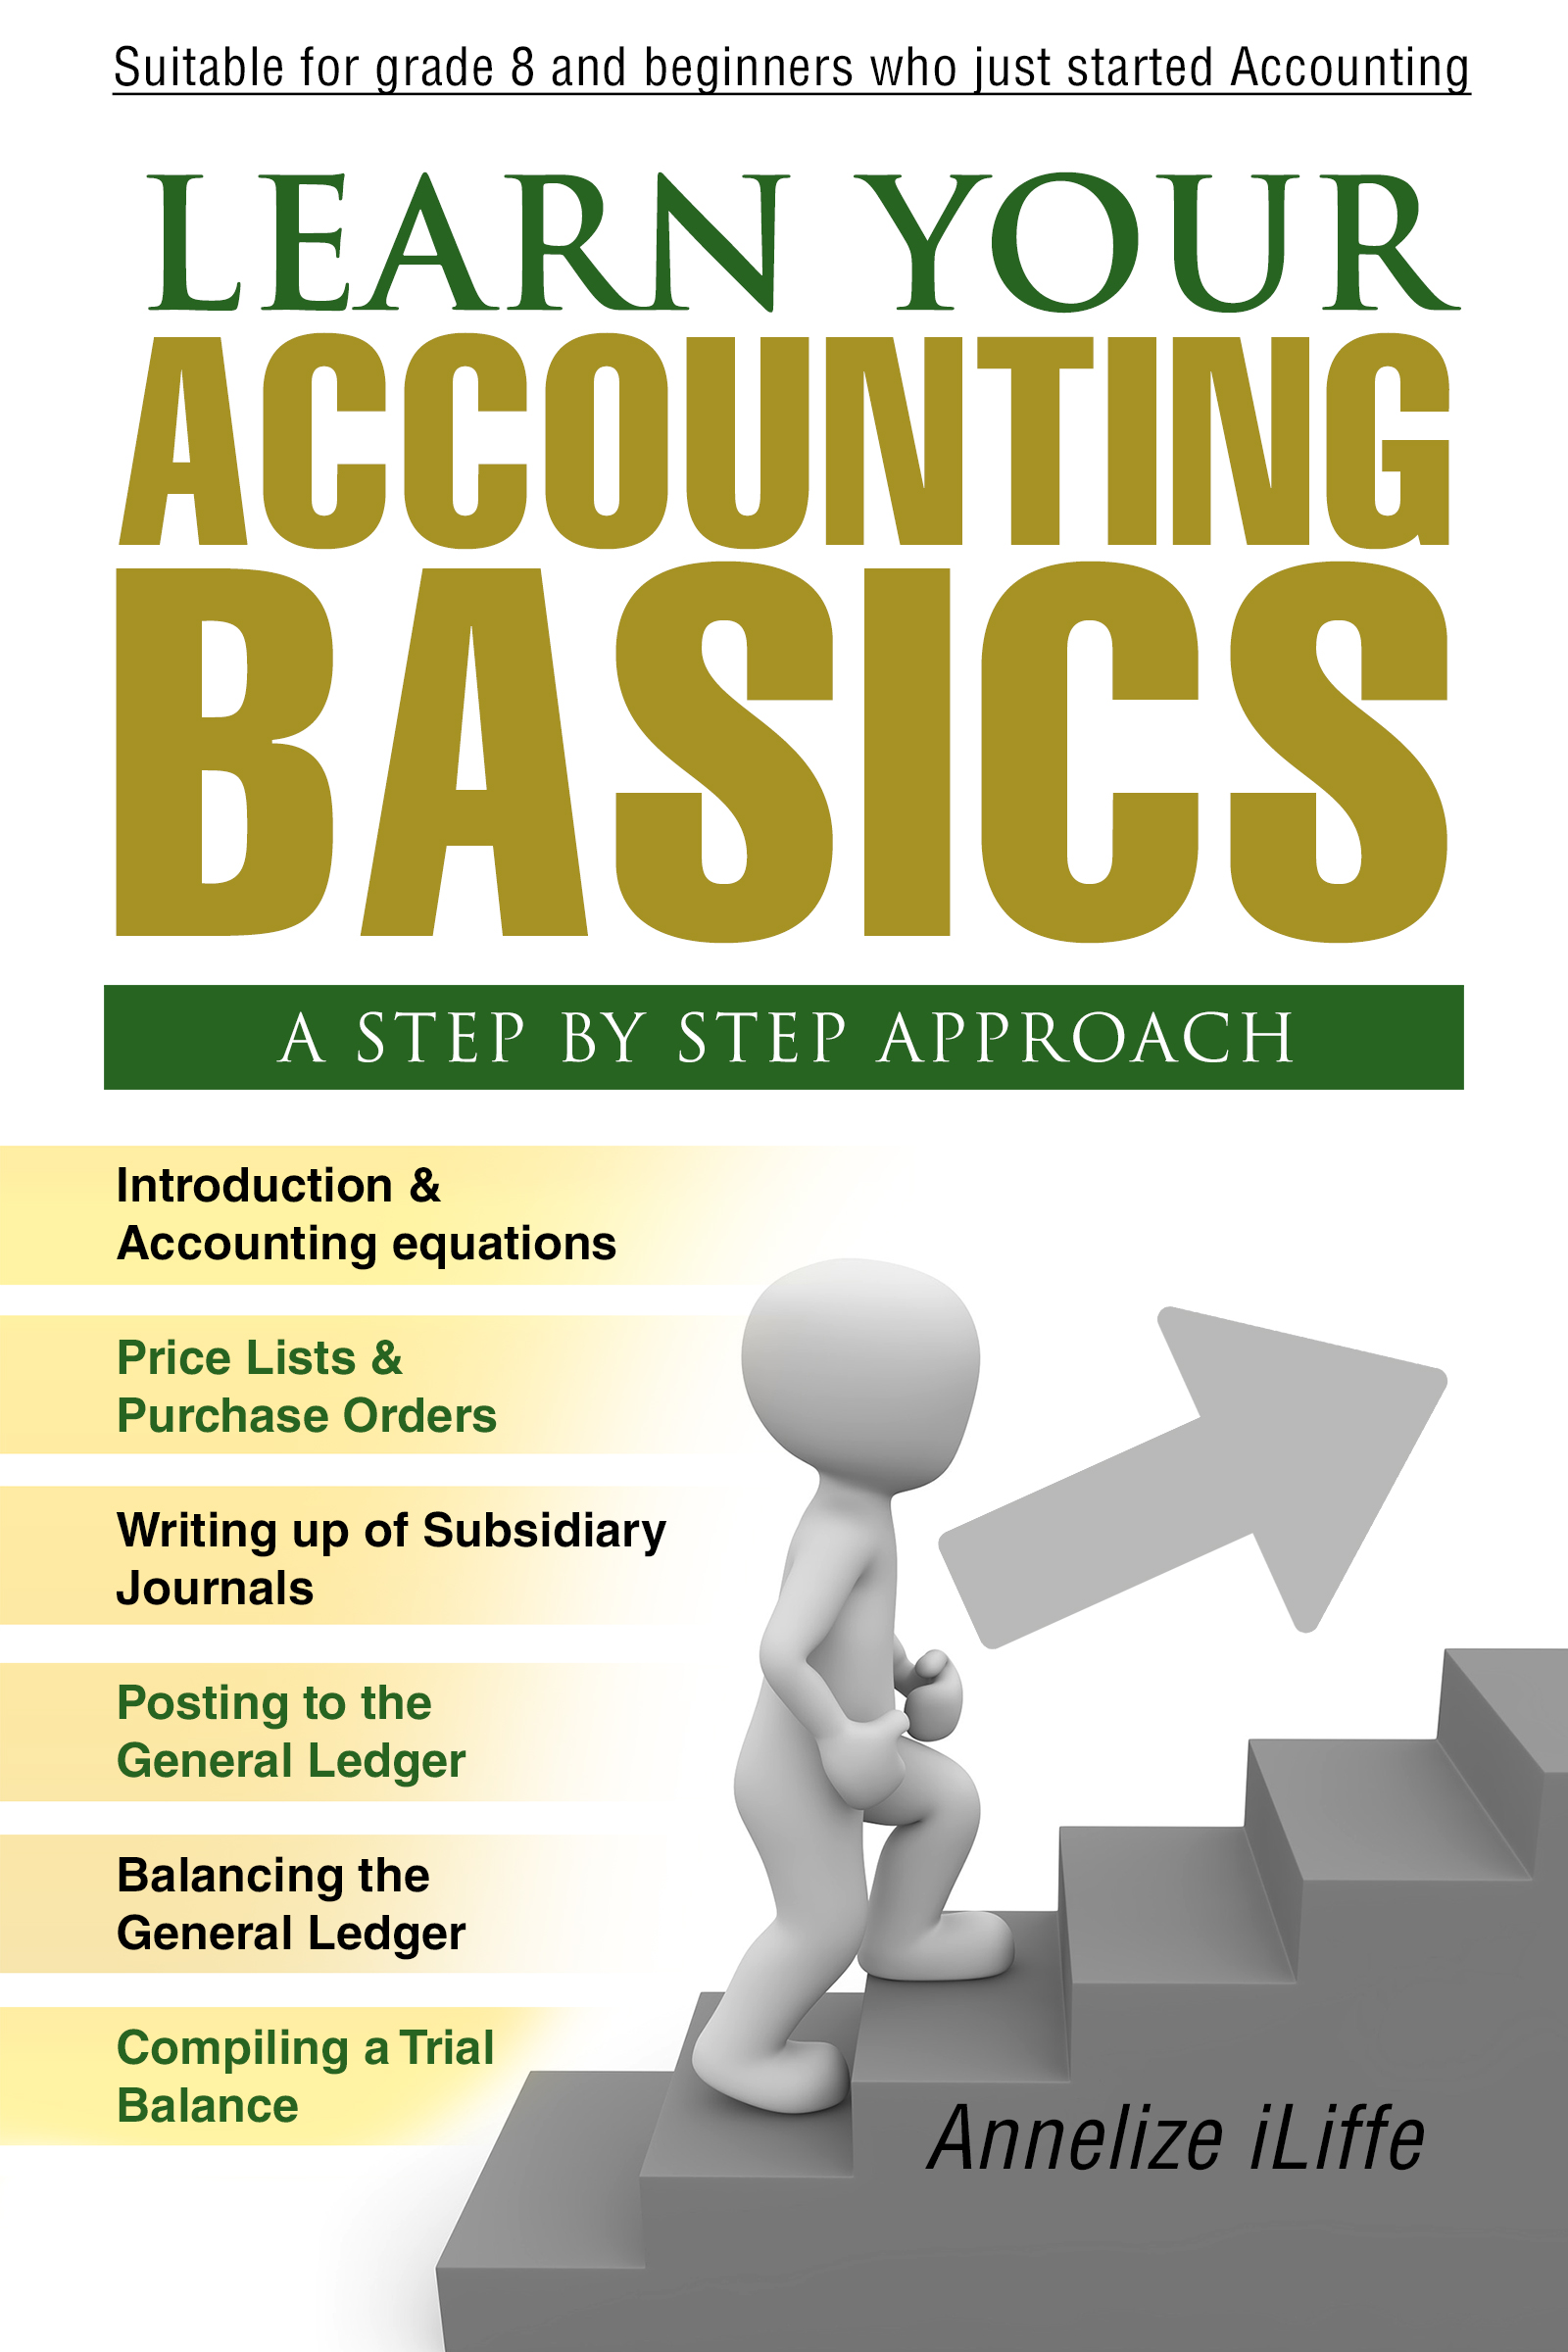 Learn Your Accounting Basics